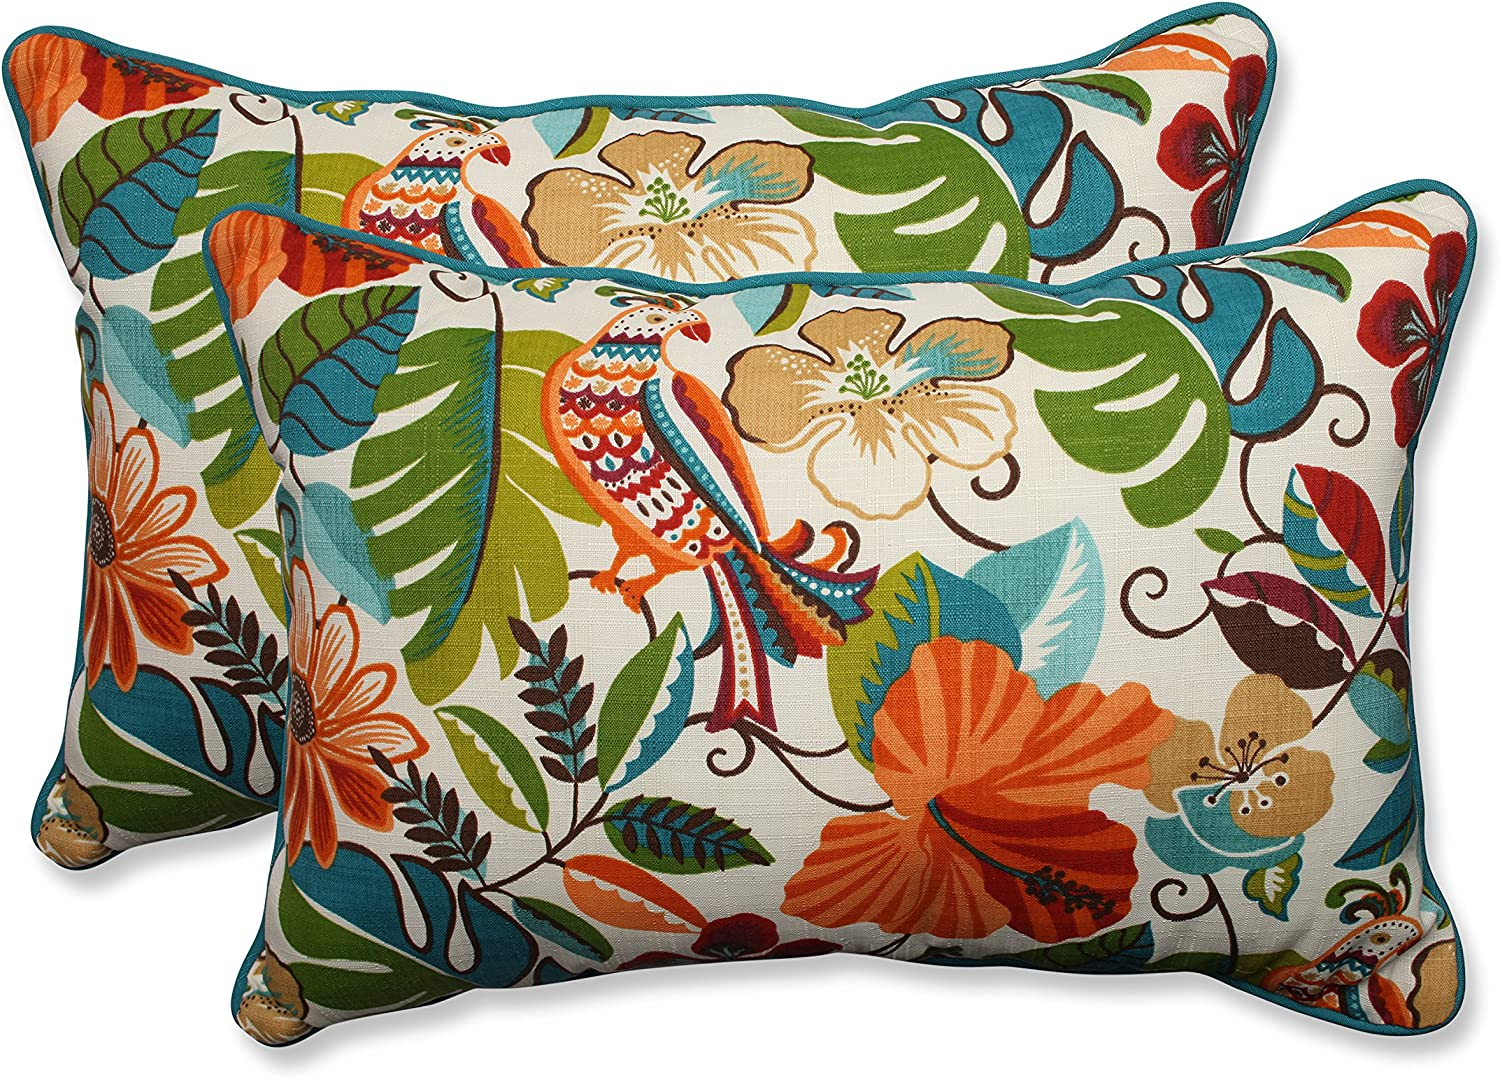 Pillow Perfect favorite Outdoor Indoor Lensing New Free Shipping Pi Oversized Jungle Lumbar